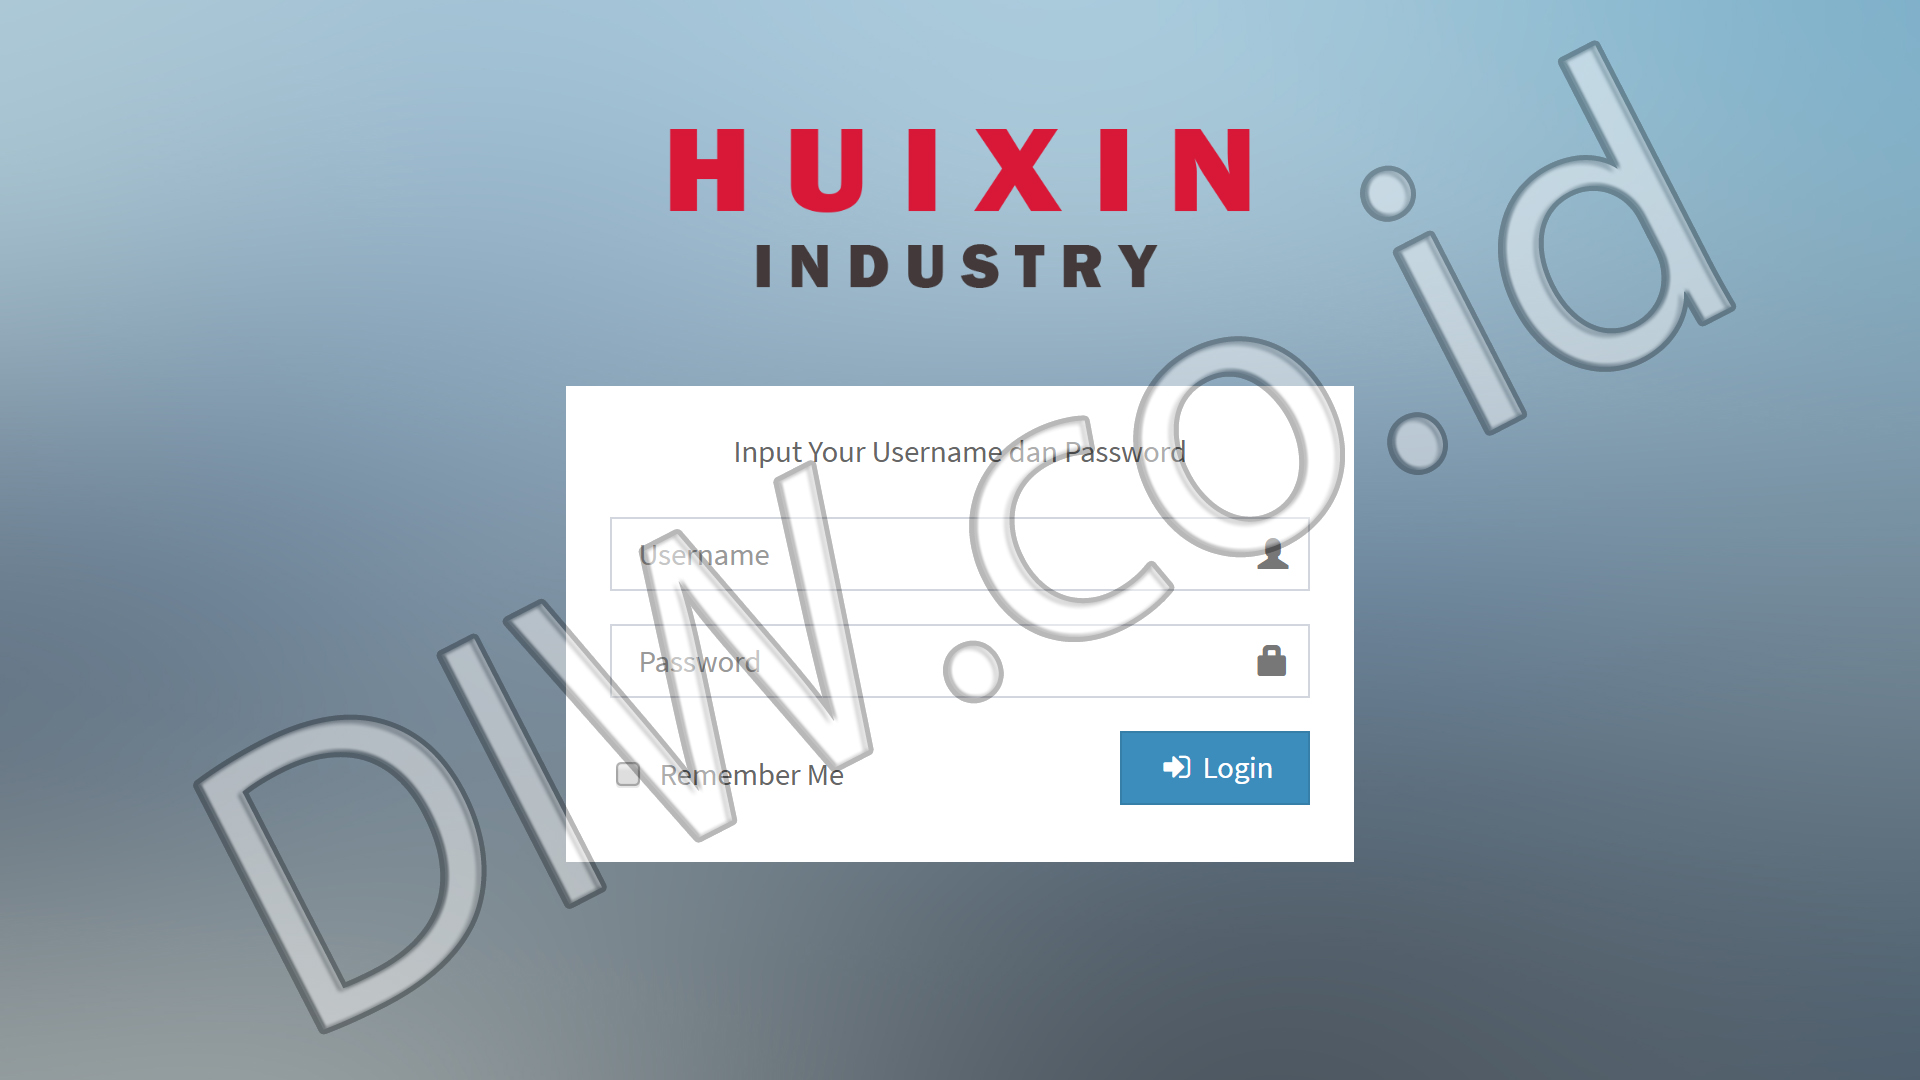 Portfolio 1 - Hui Xin Industry - Andri Sunardi - Freelancer - Web Developer - CEO DIW.co.id